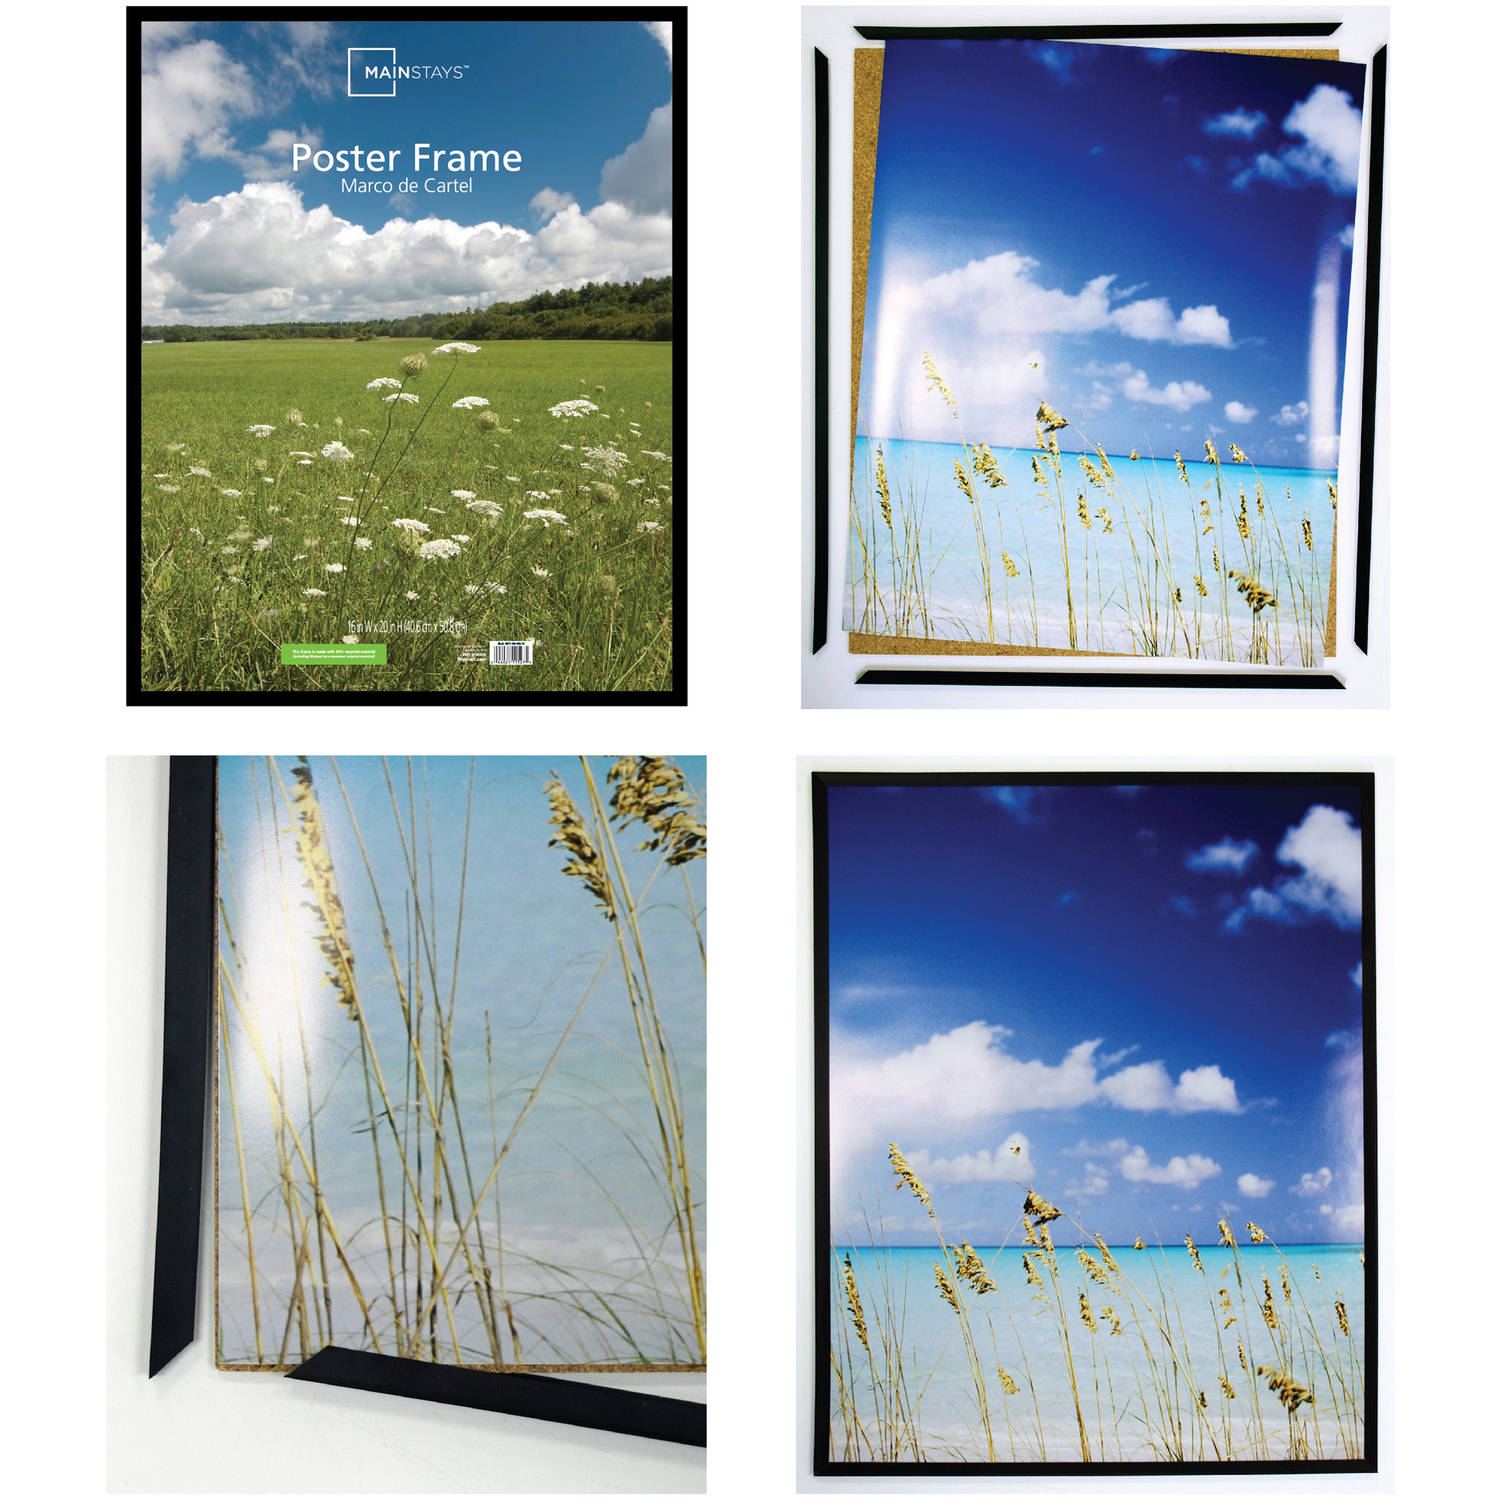 Mainstays 24x36 Basic Poster & Picture Frame, Black, Set of 2 ...